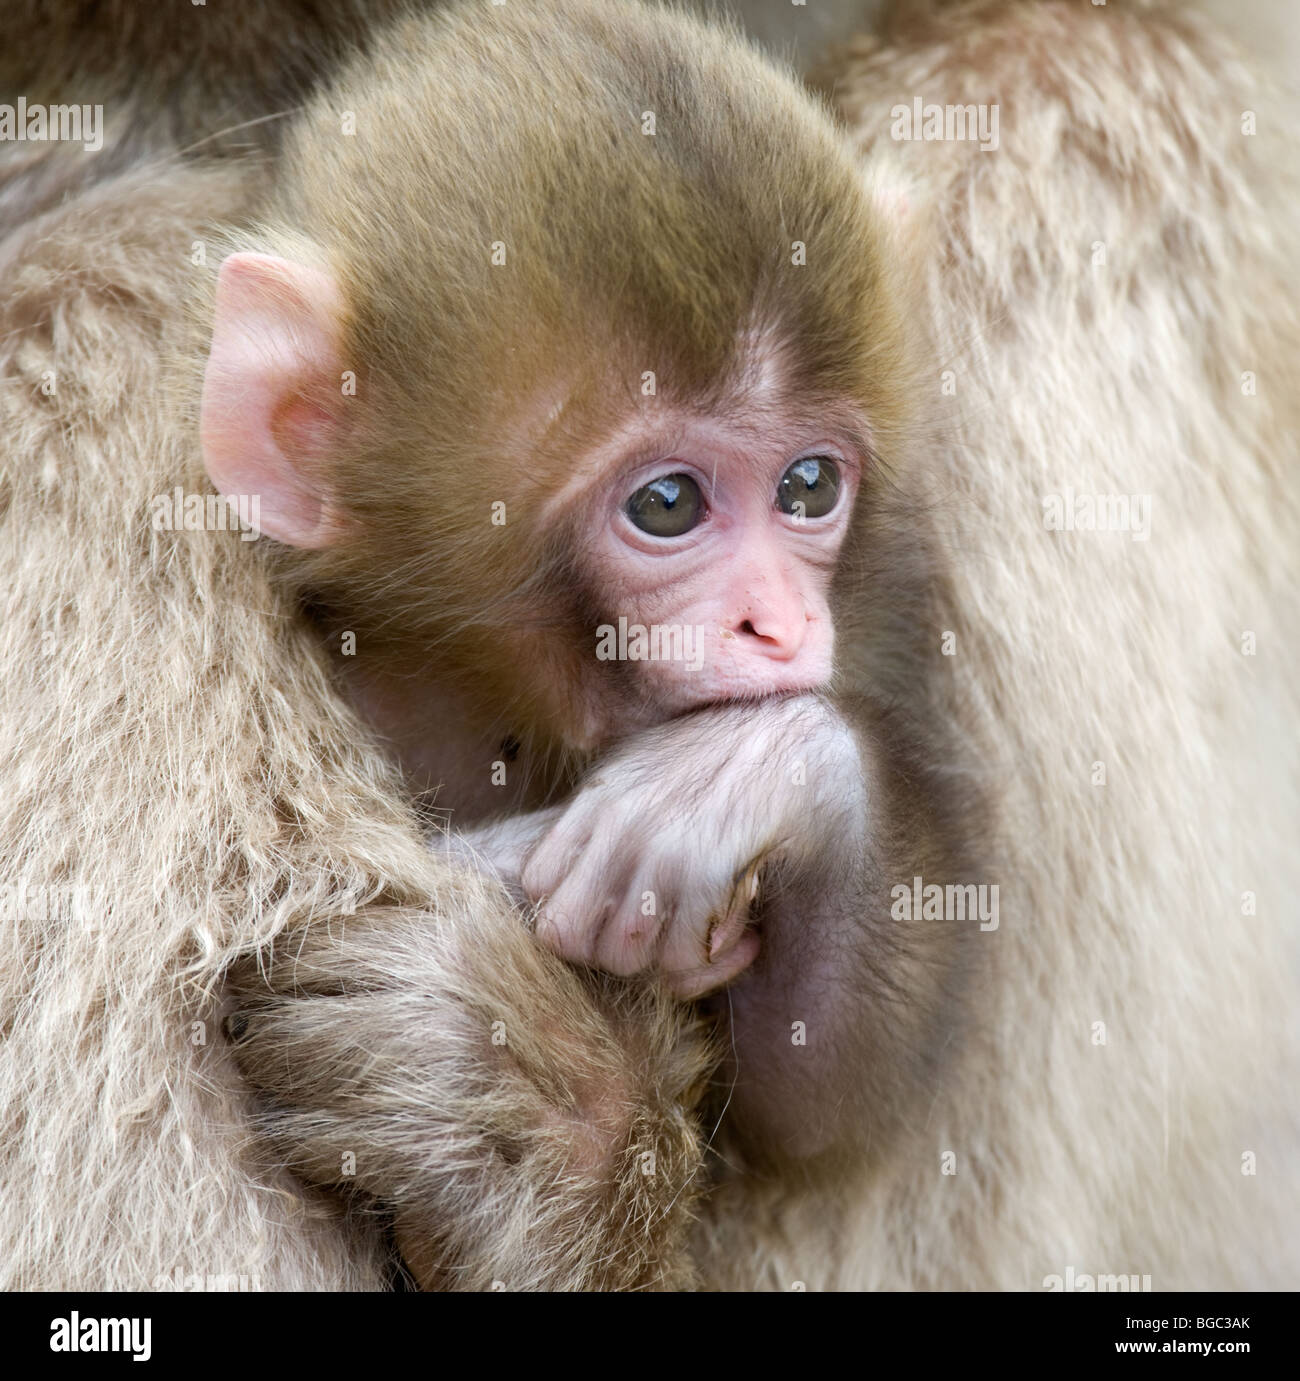 Japanese Macaque baby (Macaca fuscata) in mother's arms - Stock Image